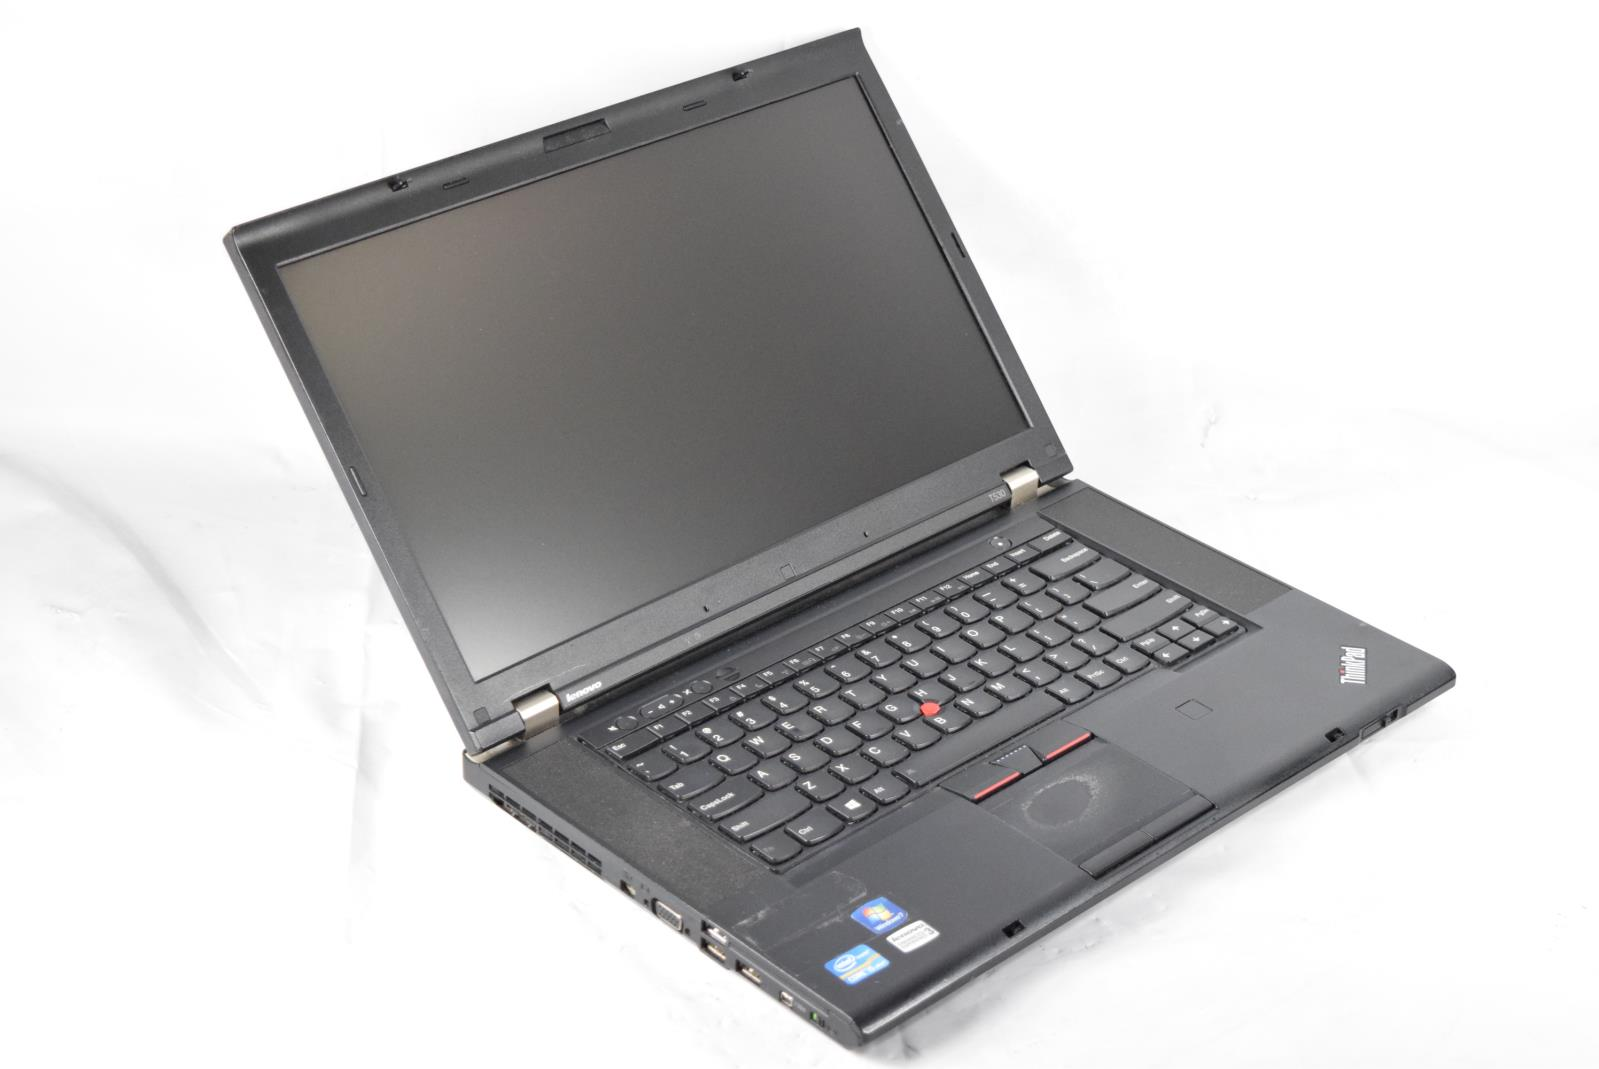 lenovo t d laptop core i m w ht ghz gb click on the image to enlarge